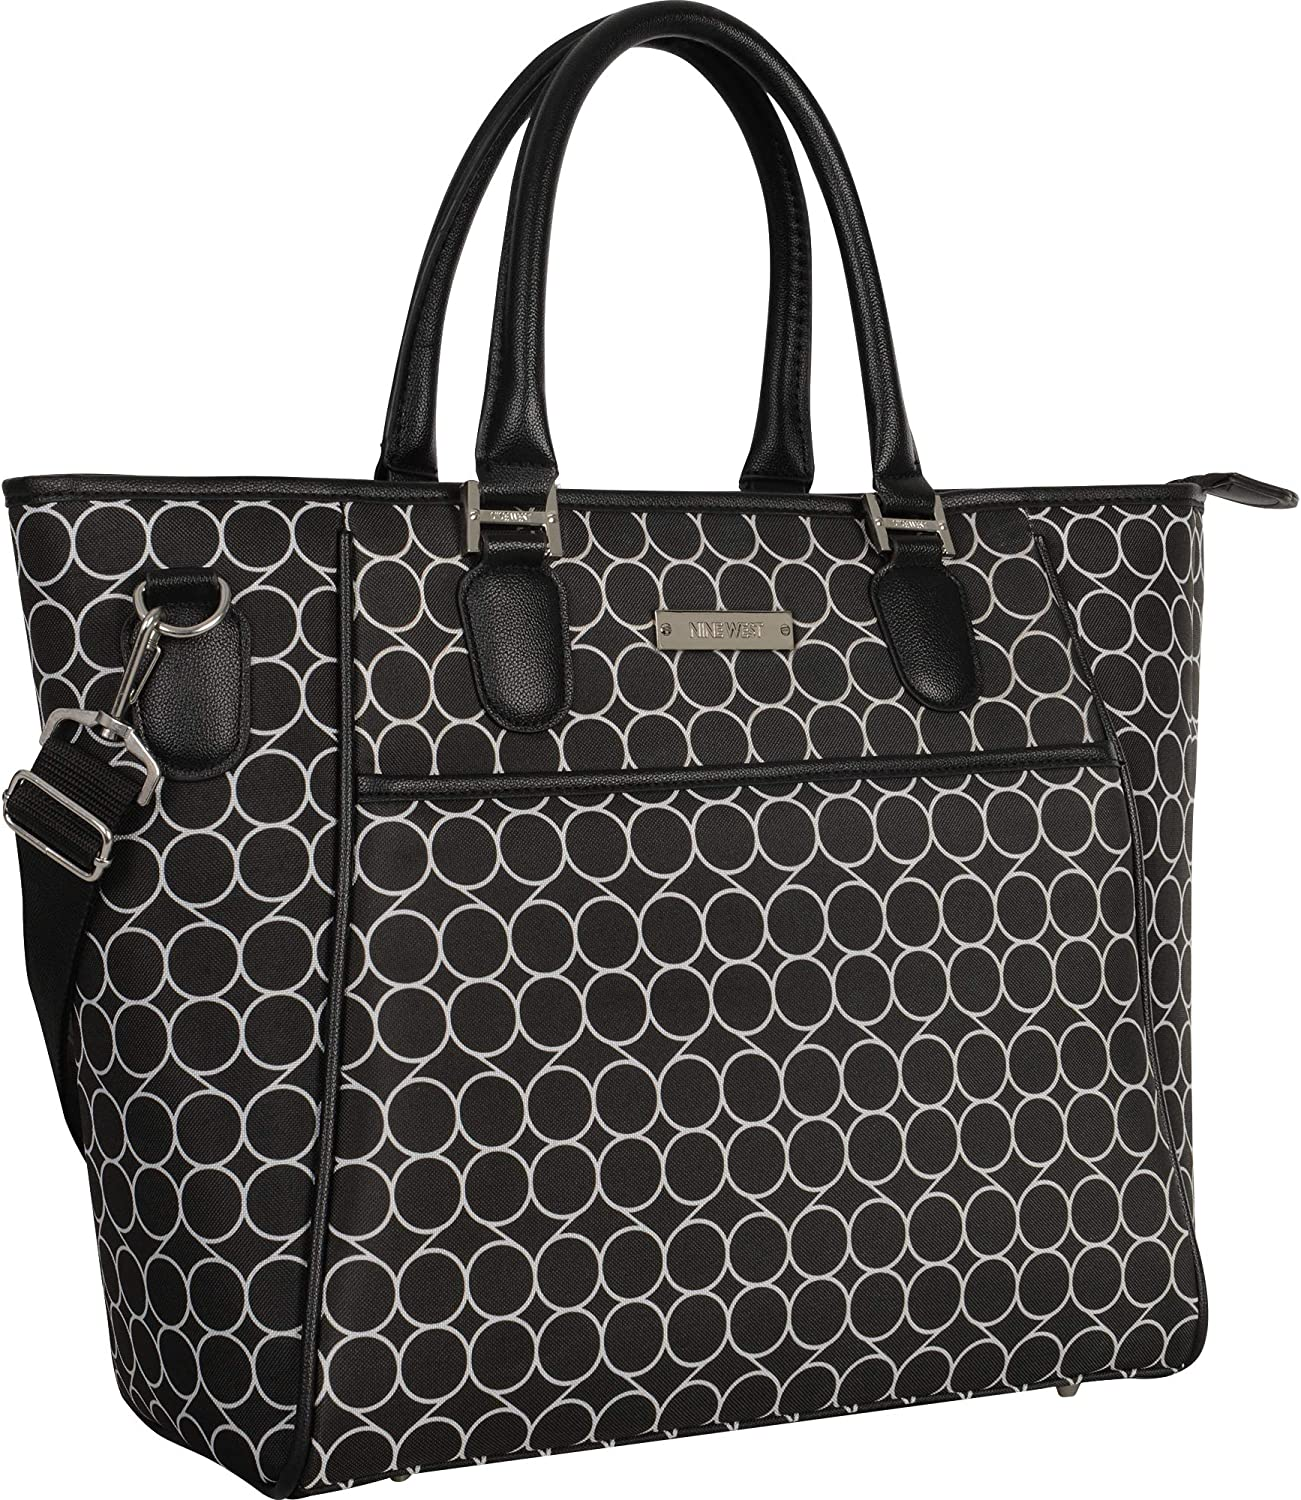 Nine West Luggage Travel Duffle Carry On Overnight Bag Duffel